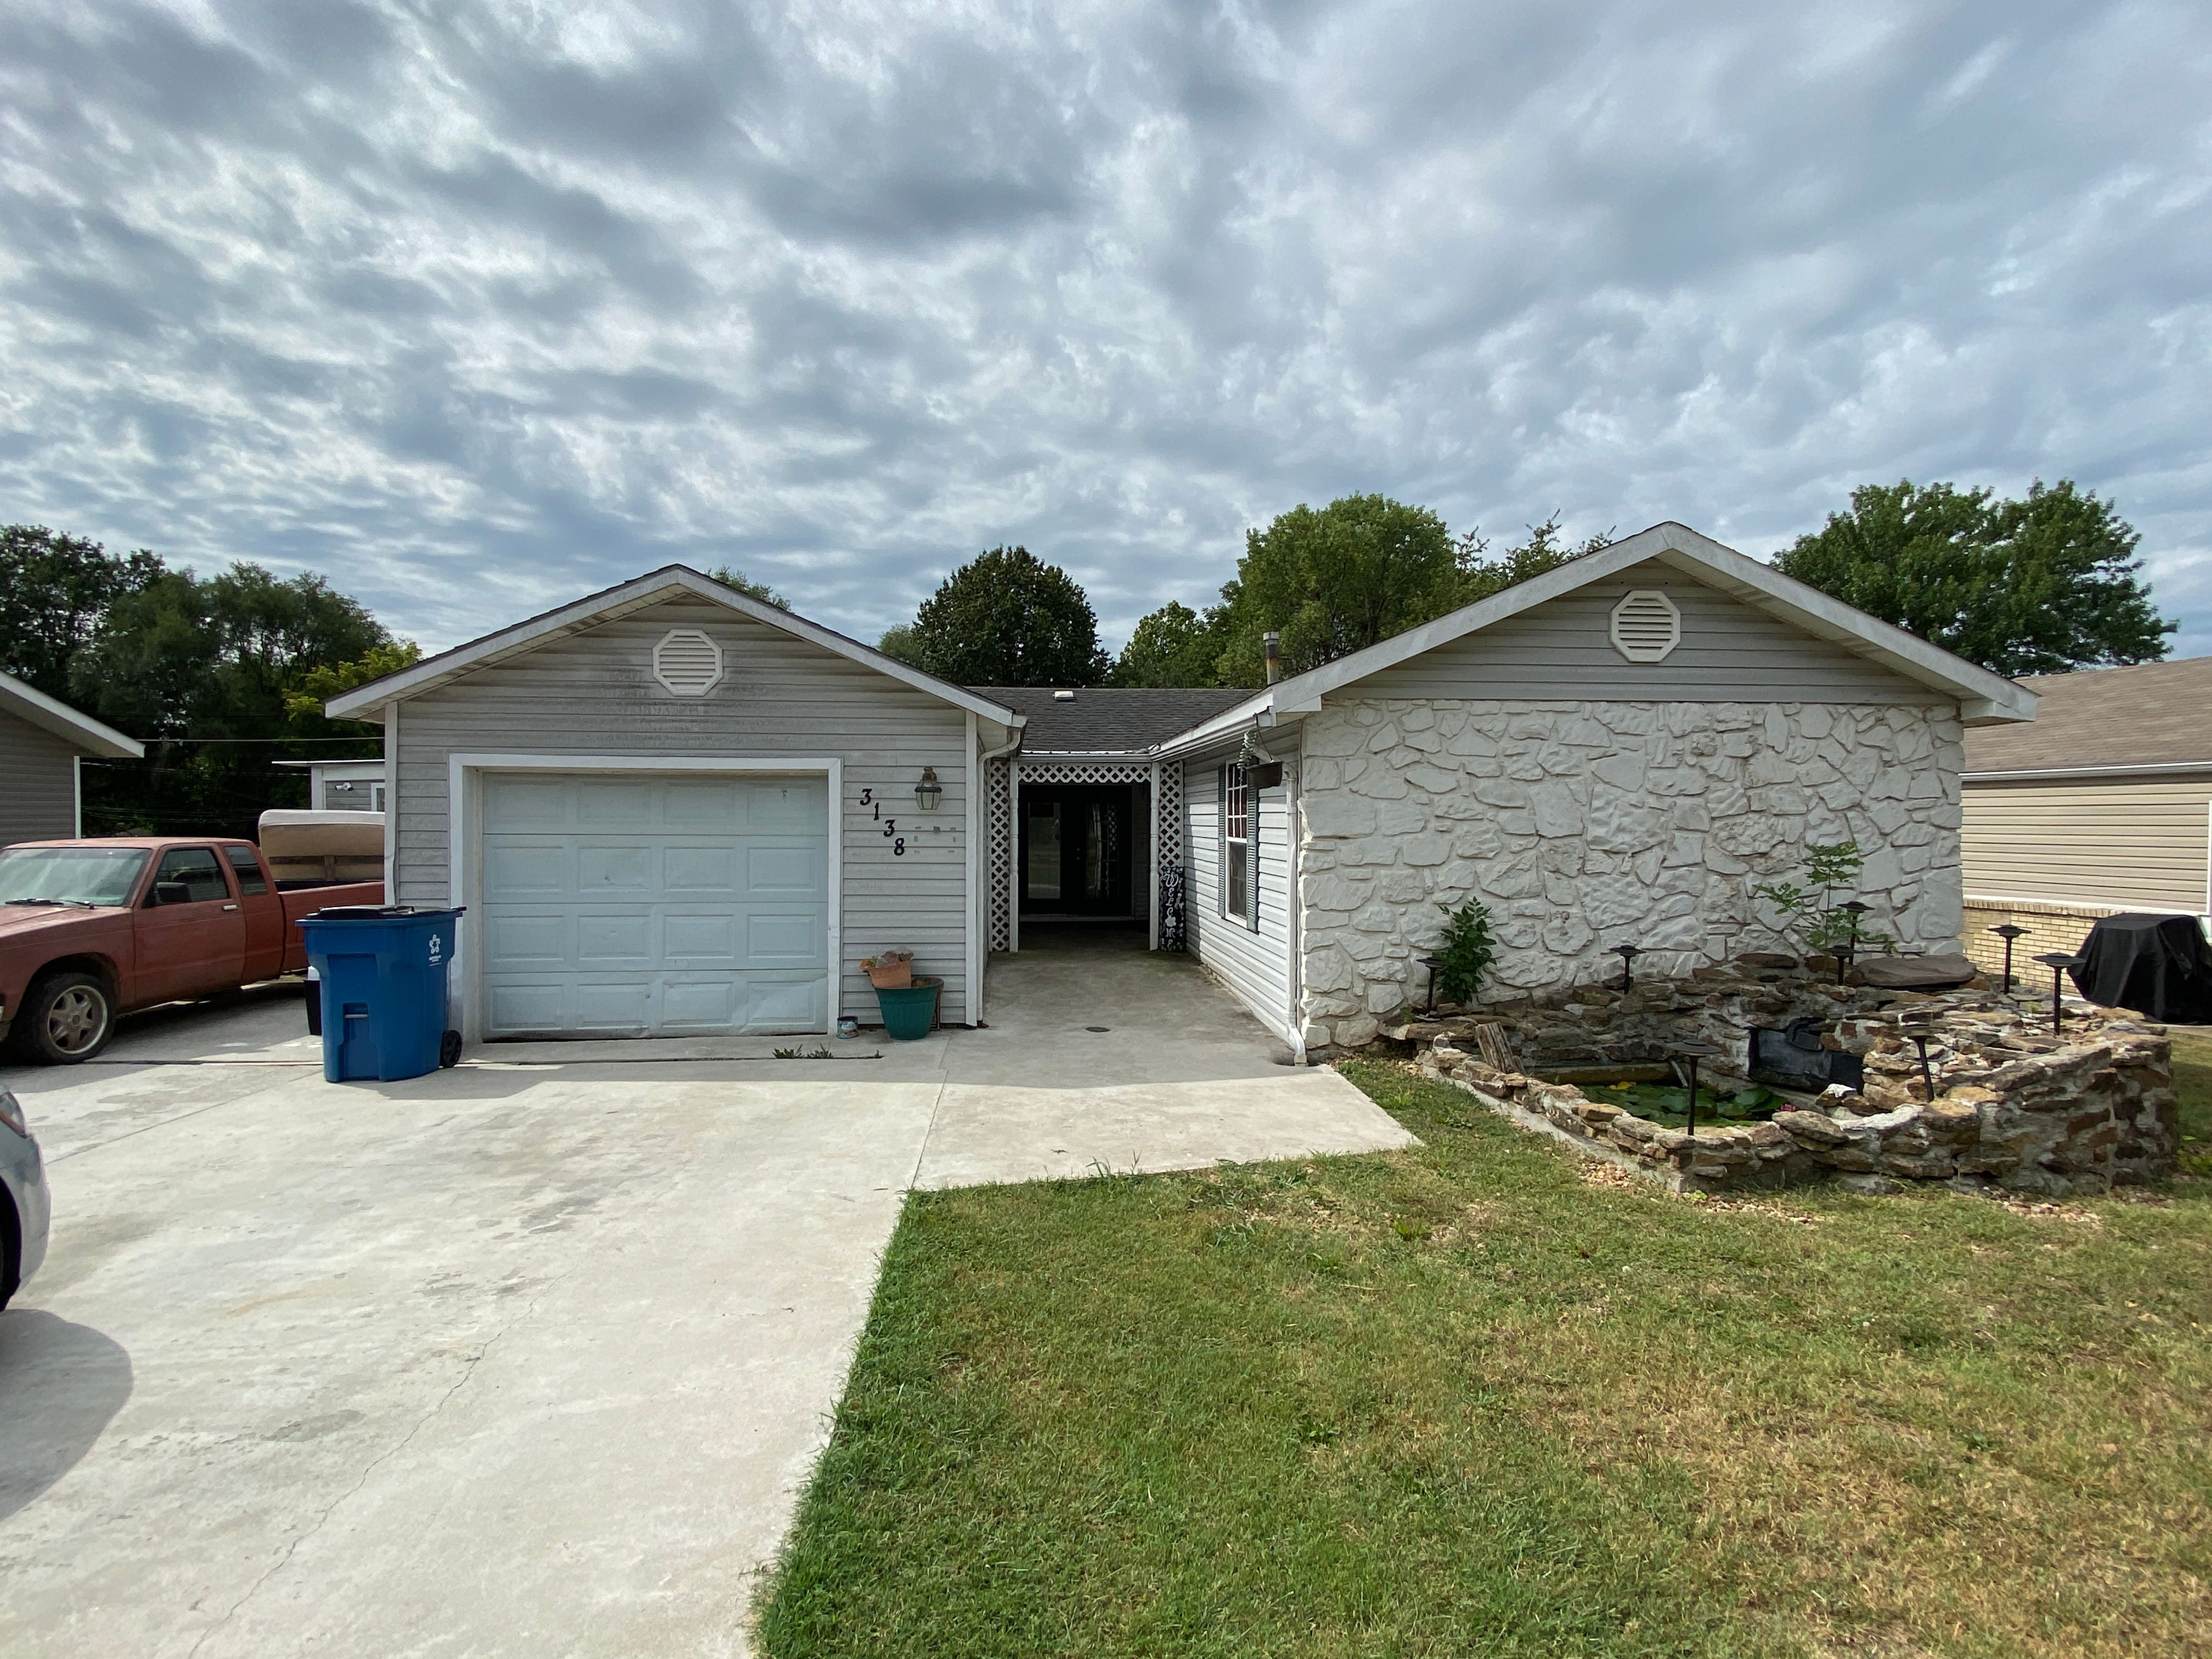 3138 W Page St, Springfield, MO